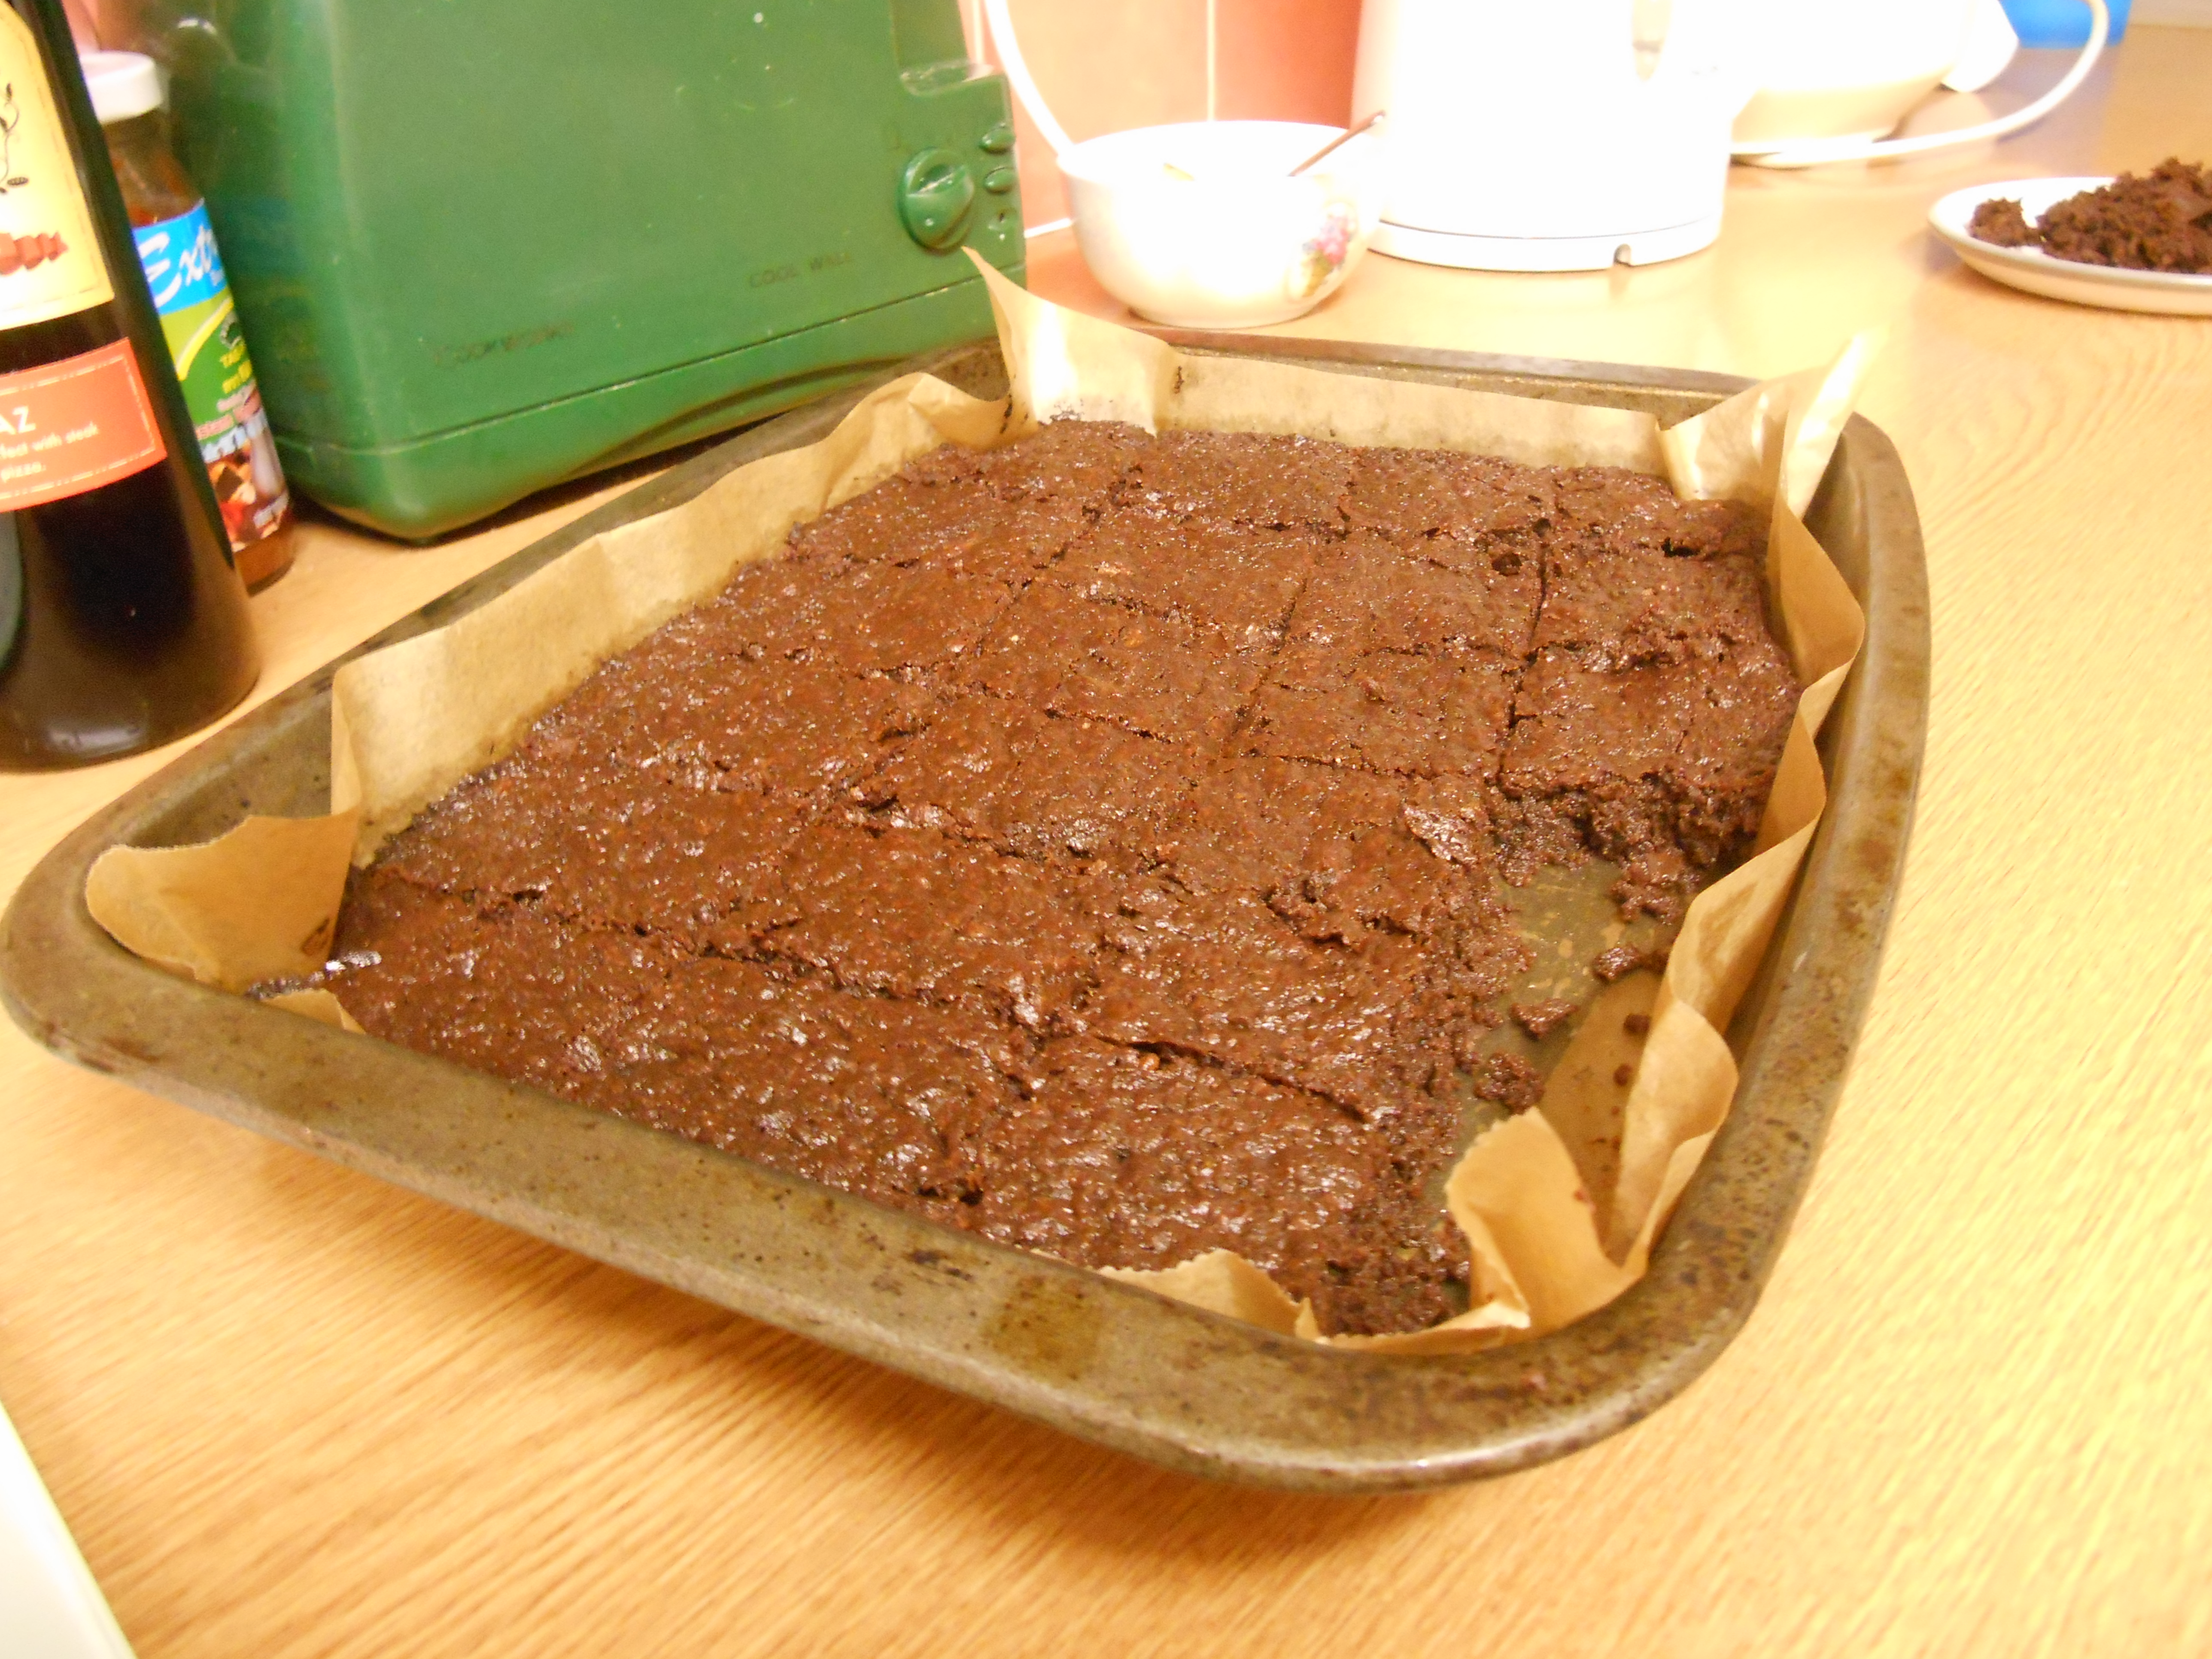 Chocolate, date and hazelnut brownies. Look and taste good, but somewhat lacking in structural integrity!